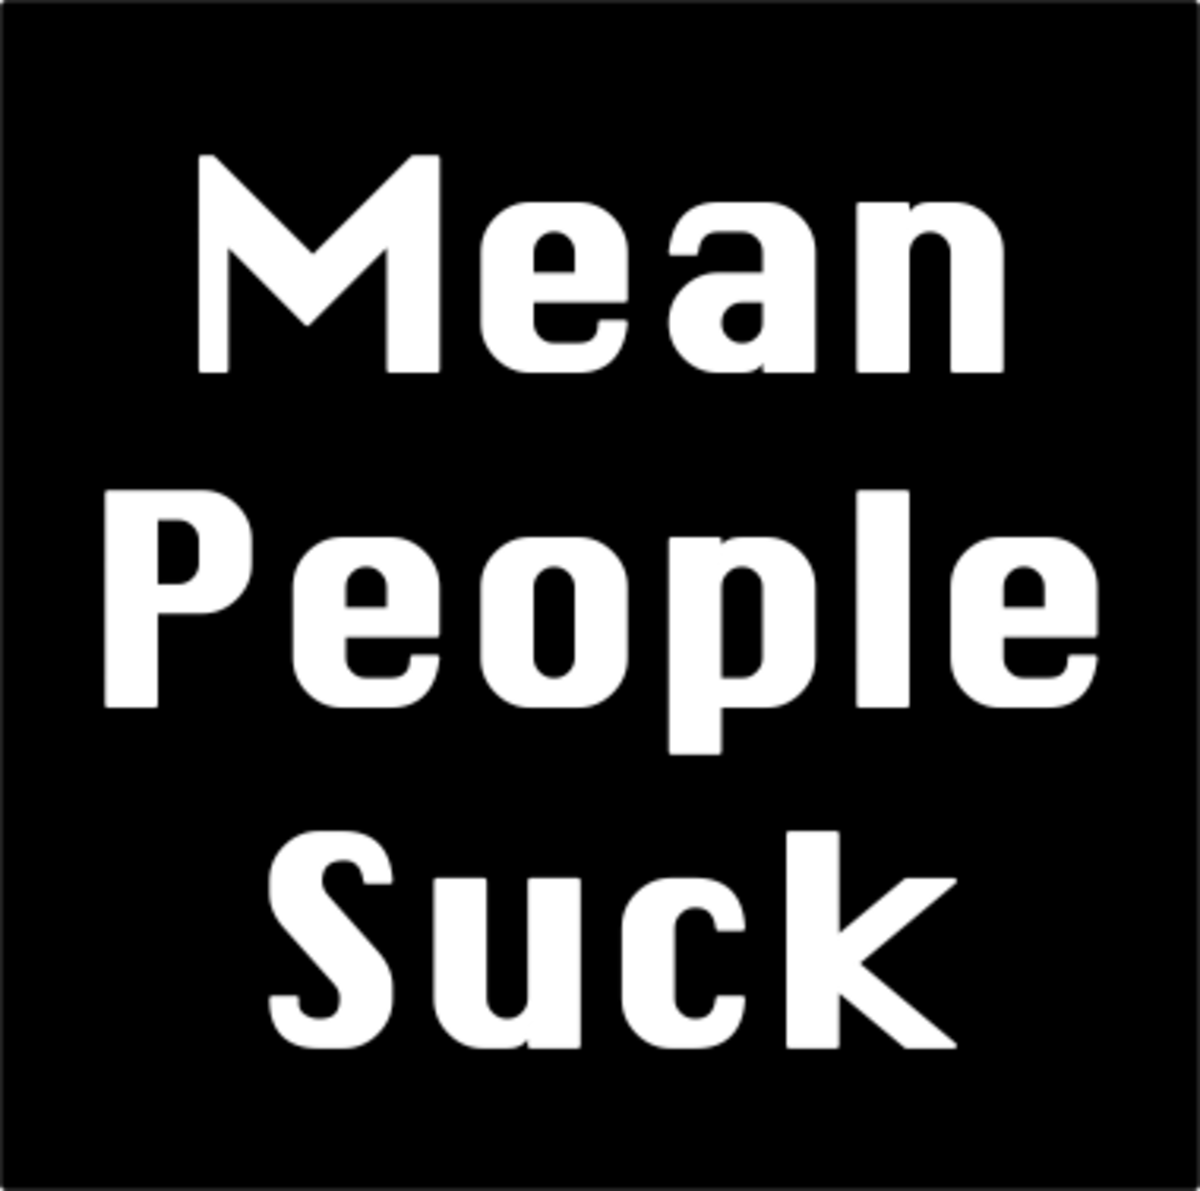 Mean people suck.  Yes, they do.